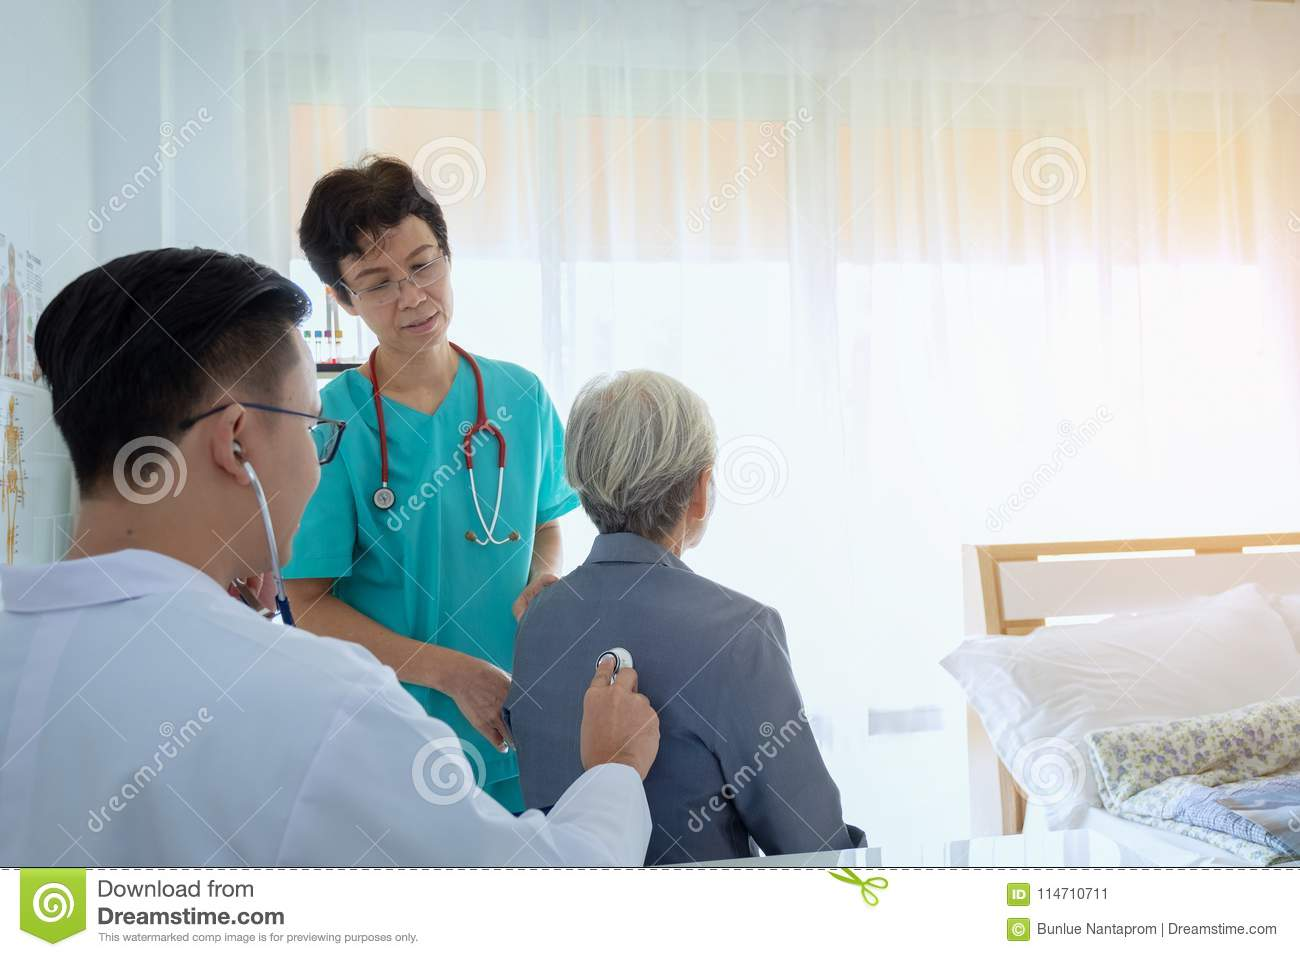 Doctor is examining Senior patient using a stethoscope